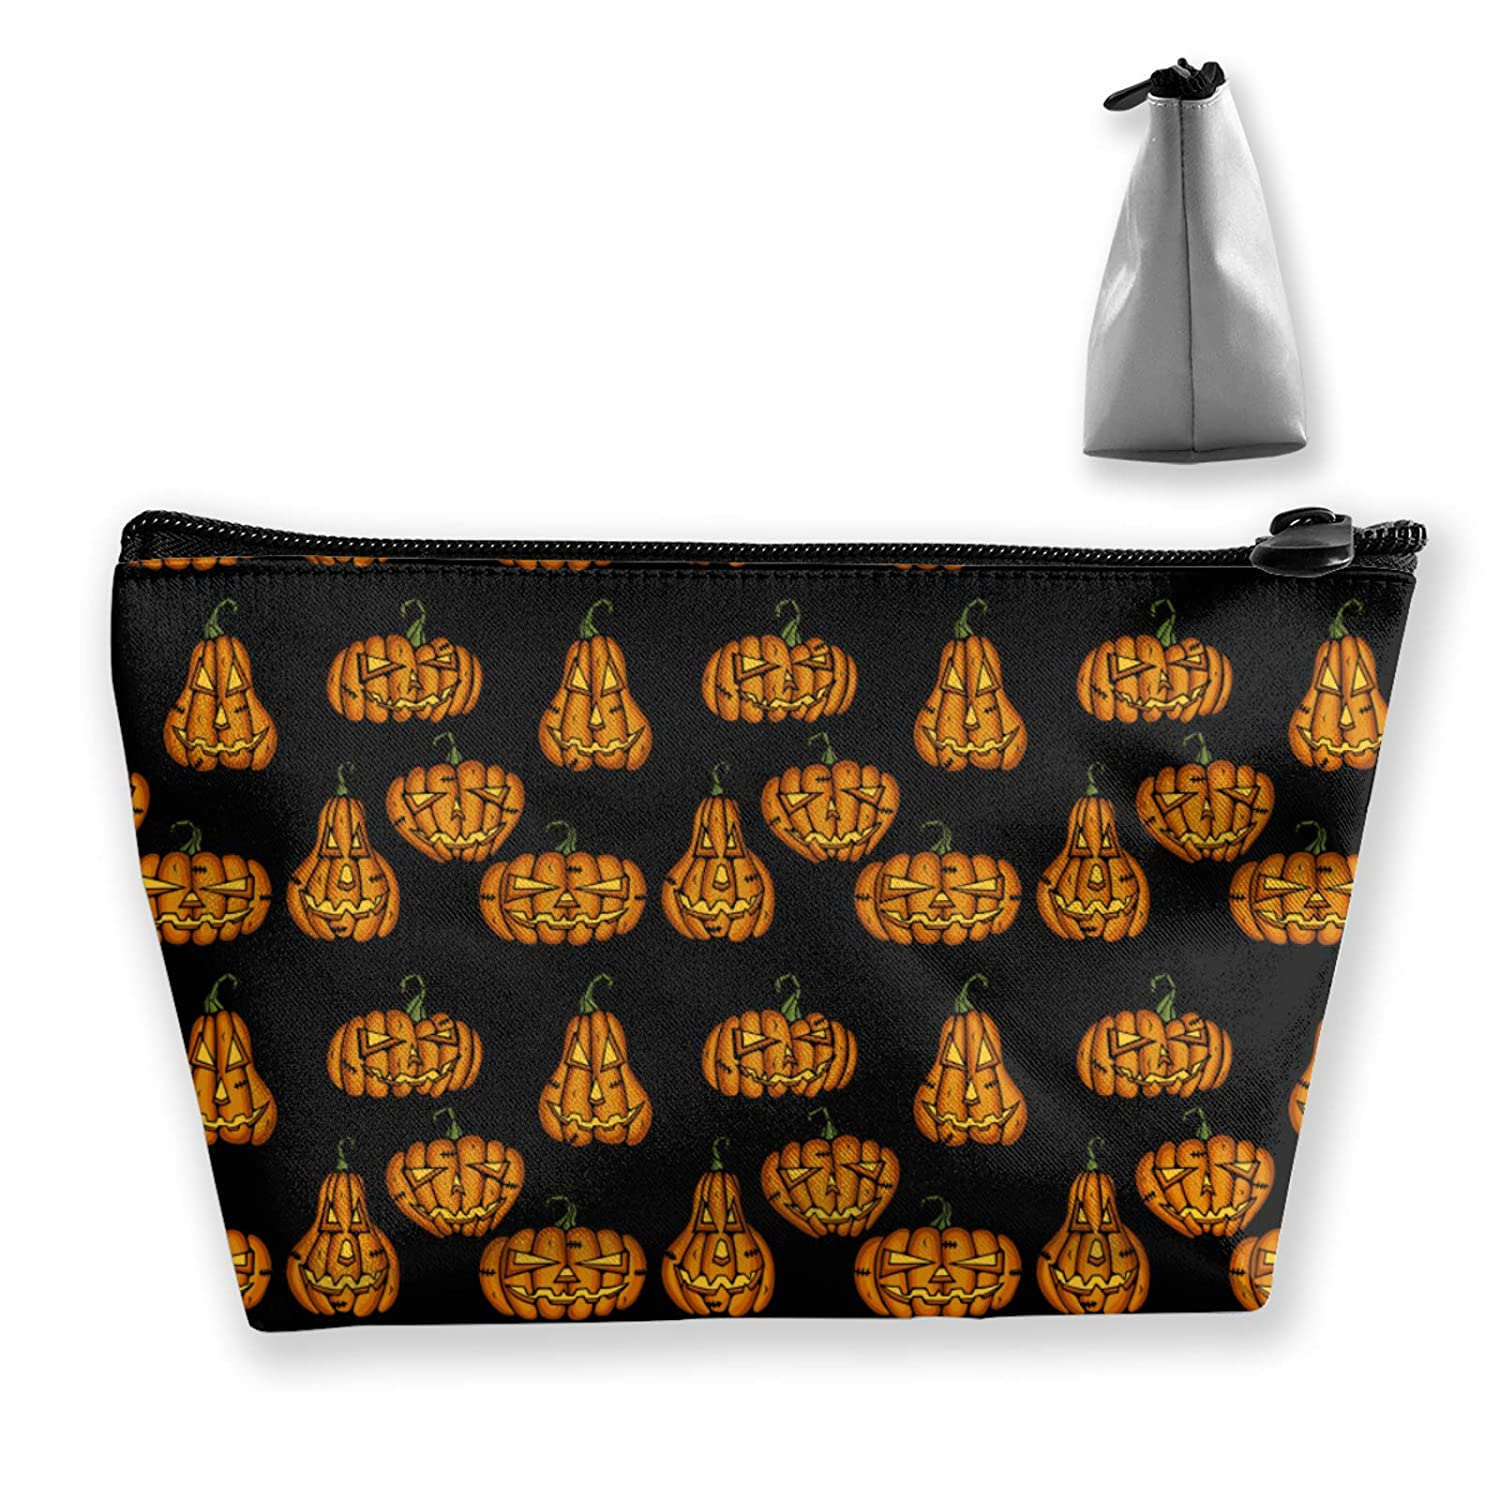 Halloween Party Night Pumpkin Black (8) Toiletry Bag Holder Portable Gift For Girls Women Large Capacity Travel Makeup Train Case For Cosmetics Digital Accessories Fashion Travel Bag